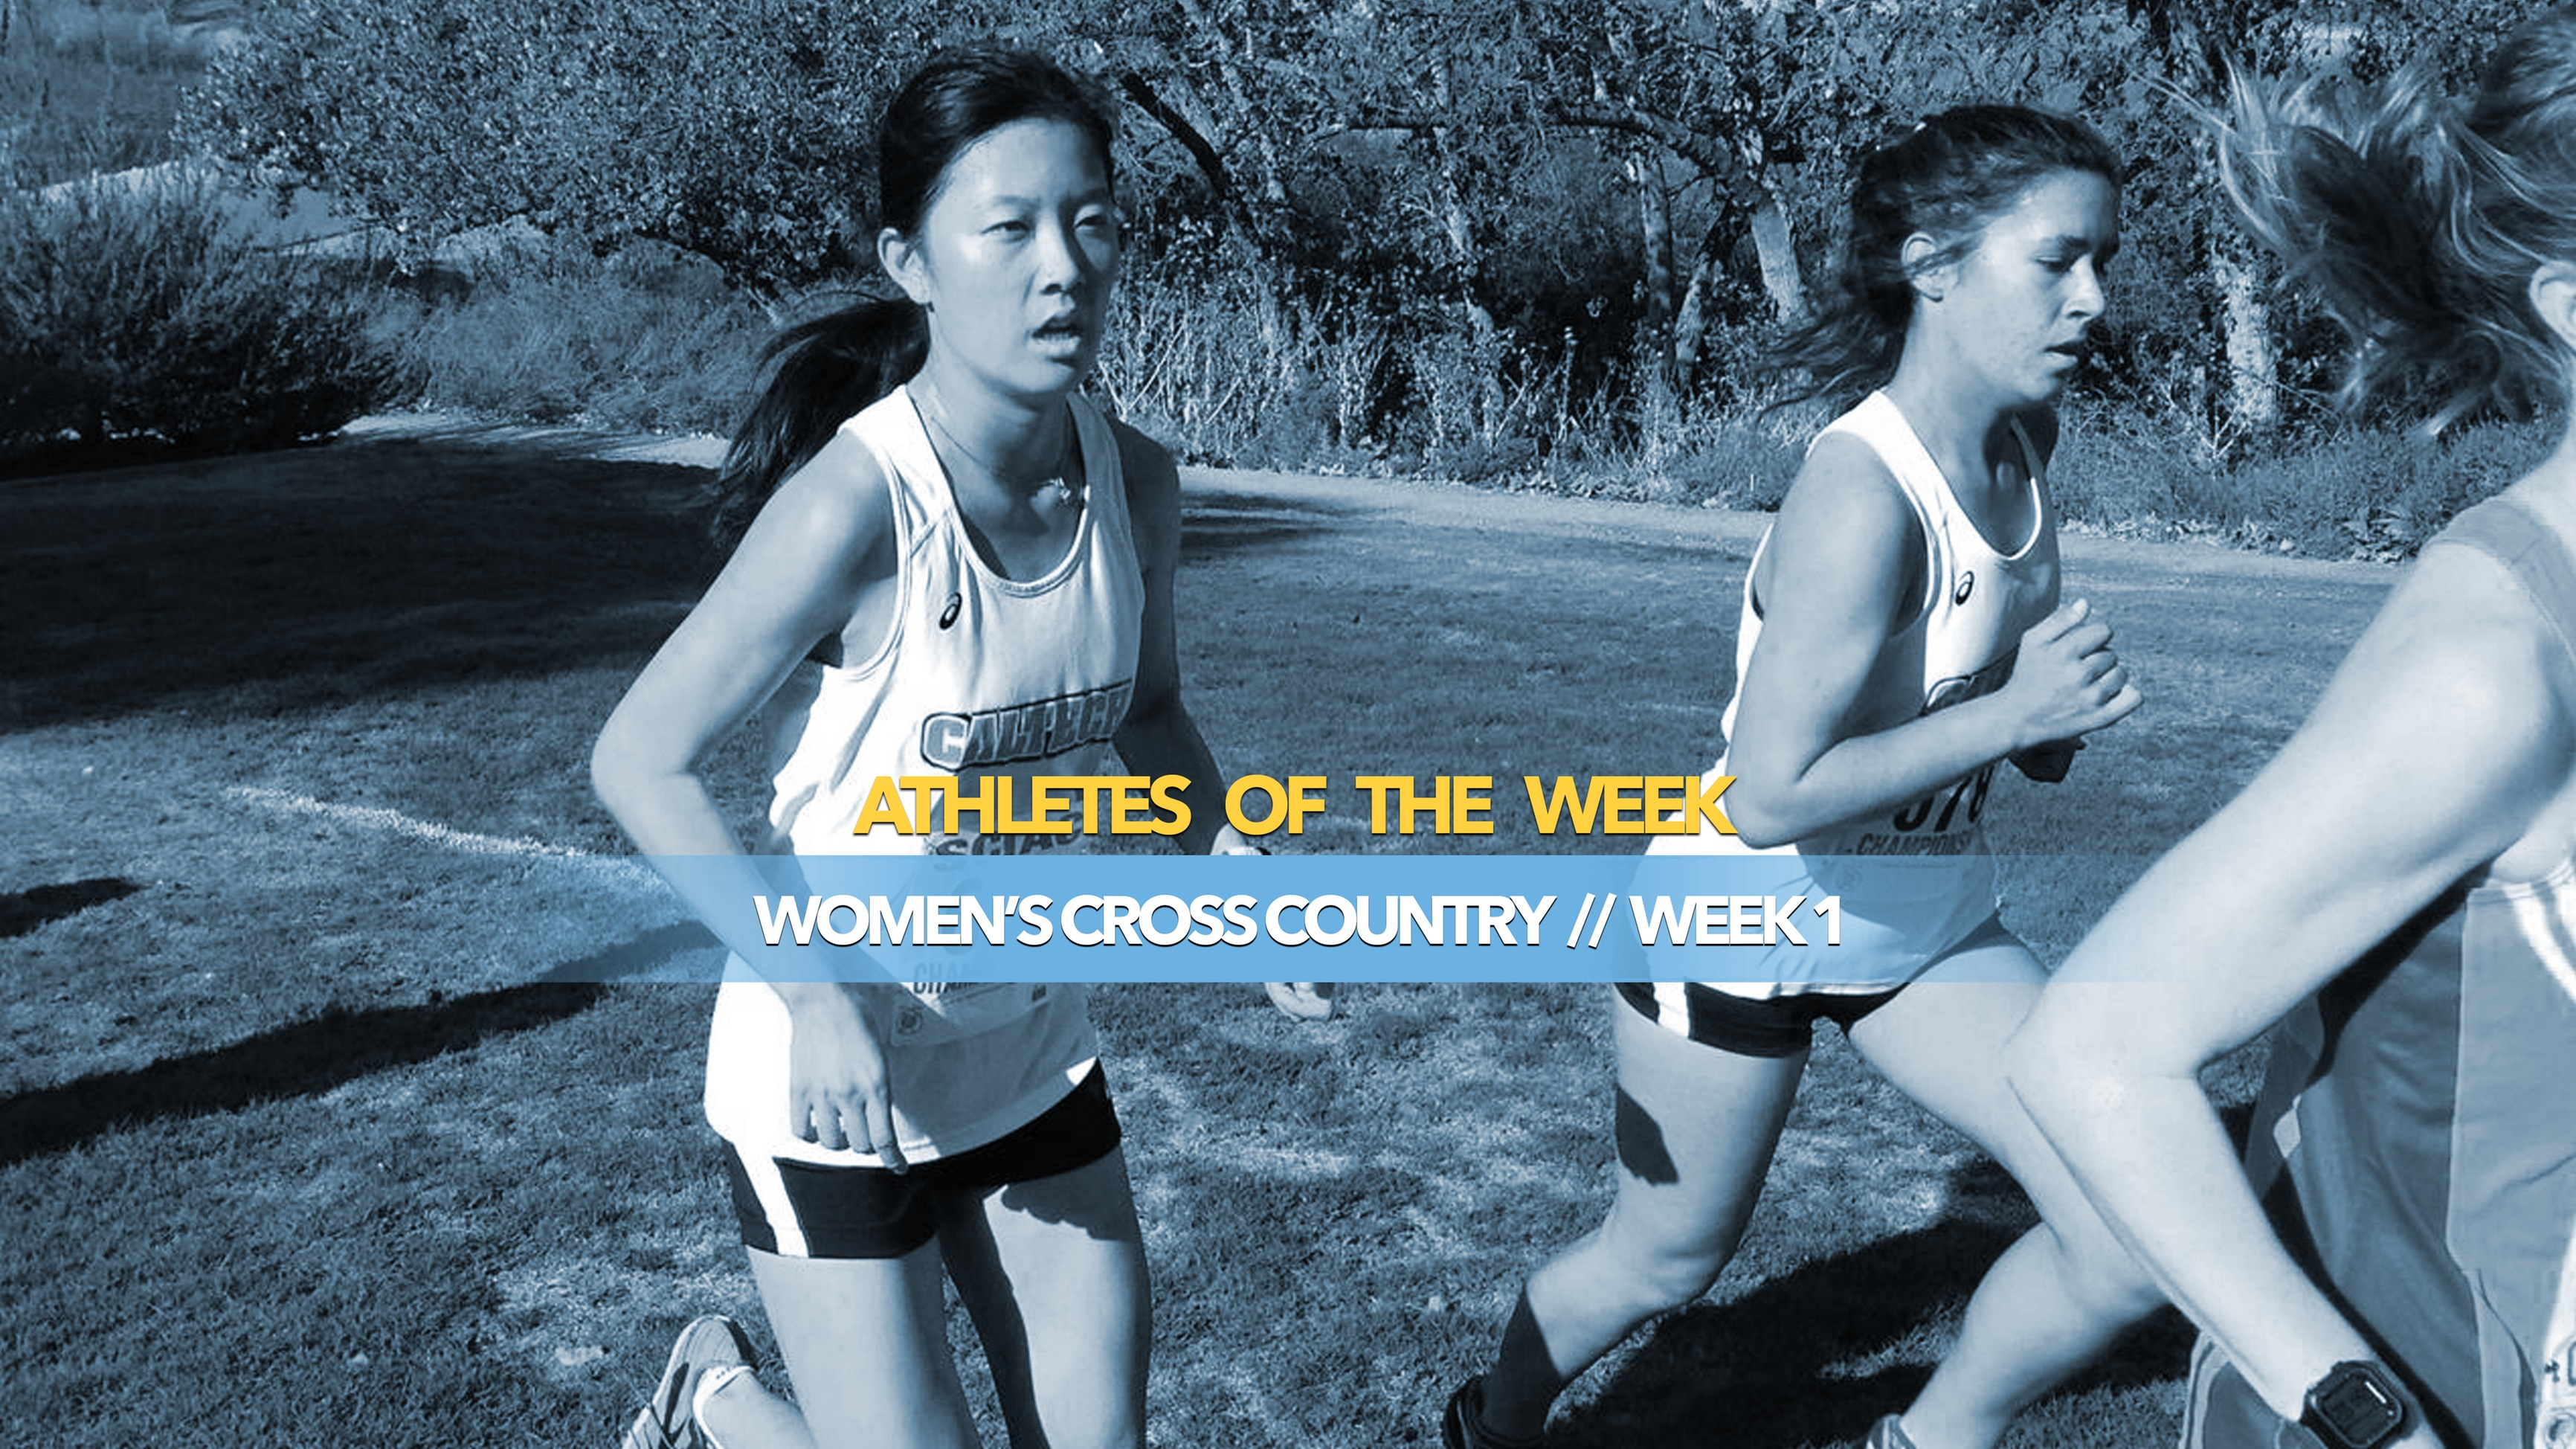 Women's Cross Country Athlete of the Week: September 2, 2019